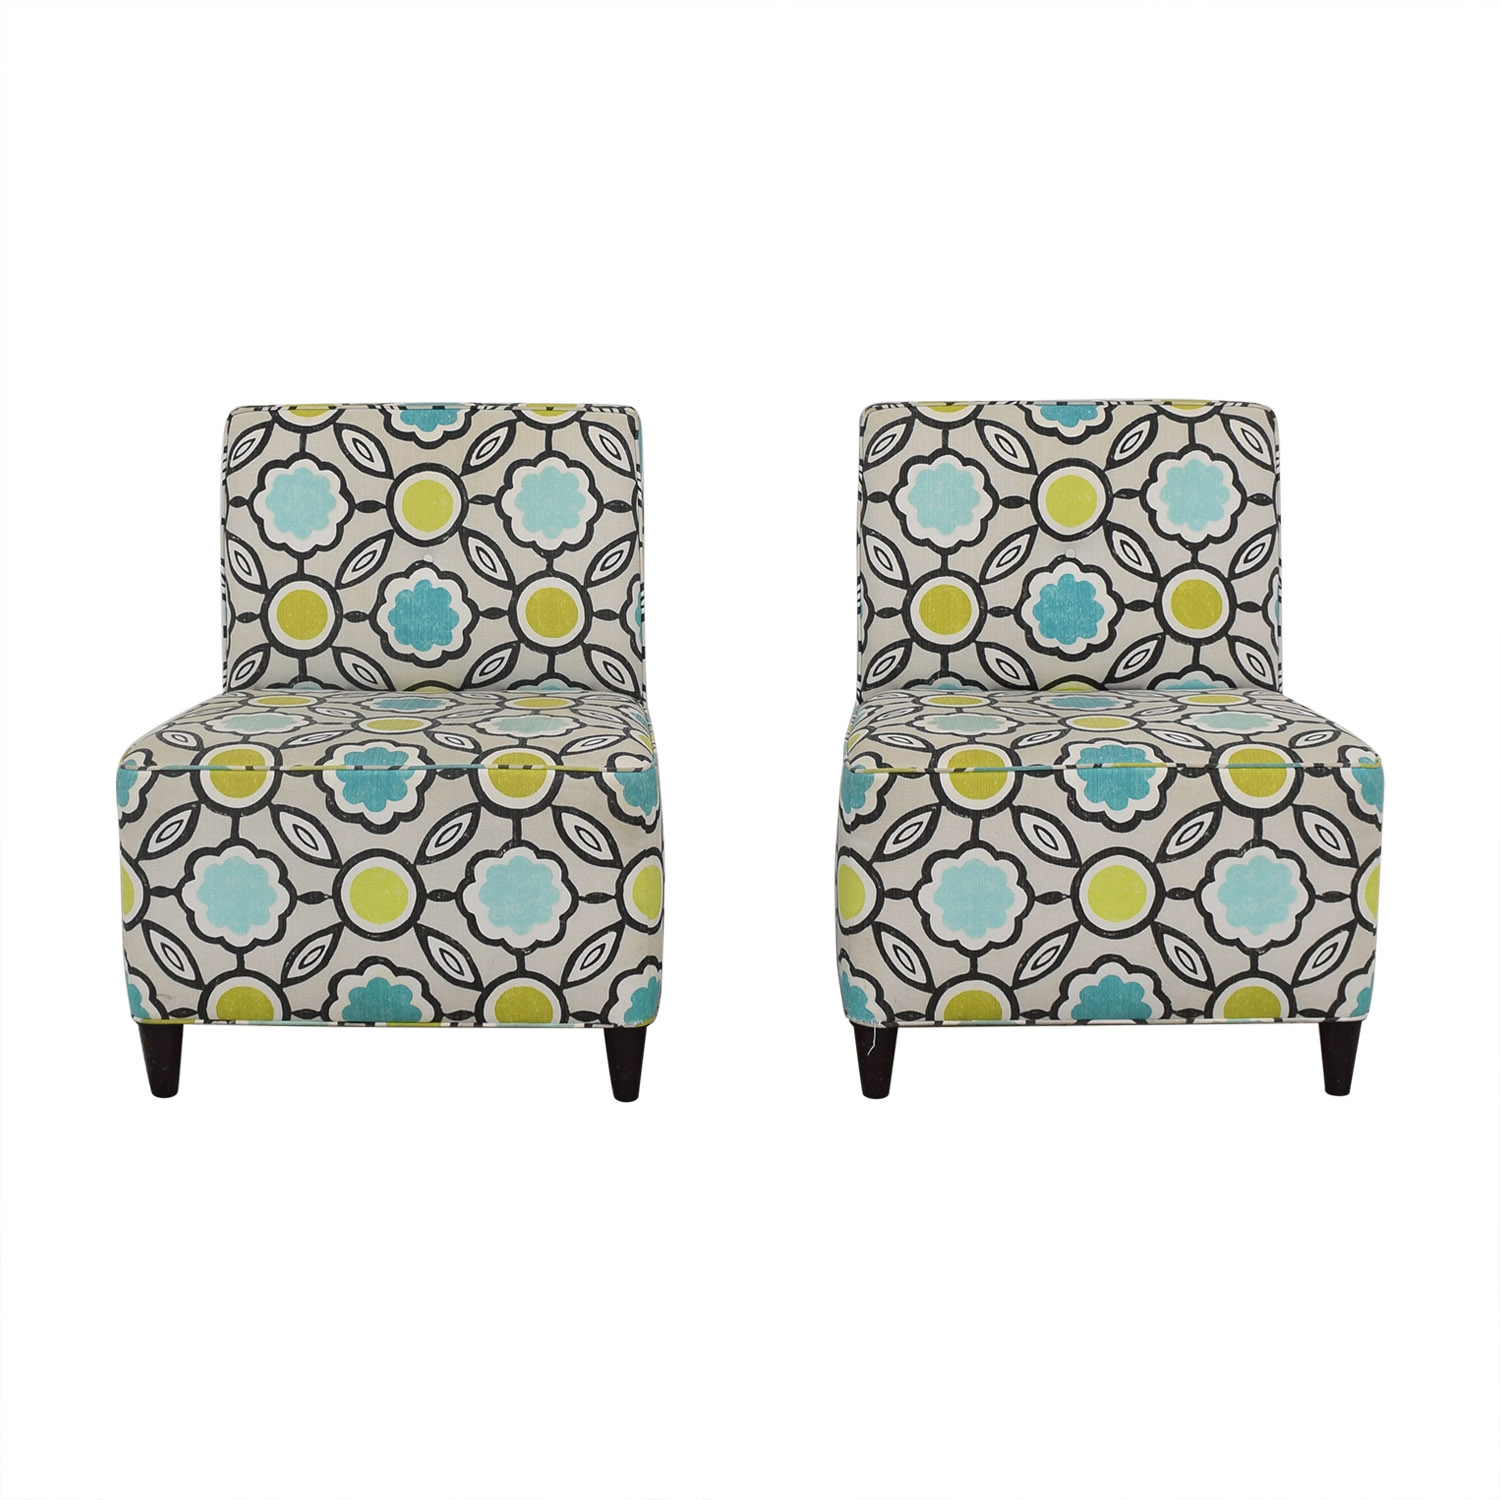 Stewart Furniture Stewart Furniture Armless Living Room Chairs Accent Chairs